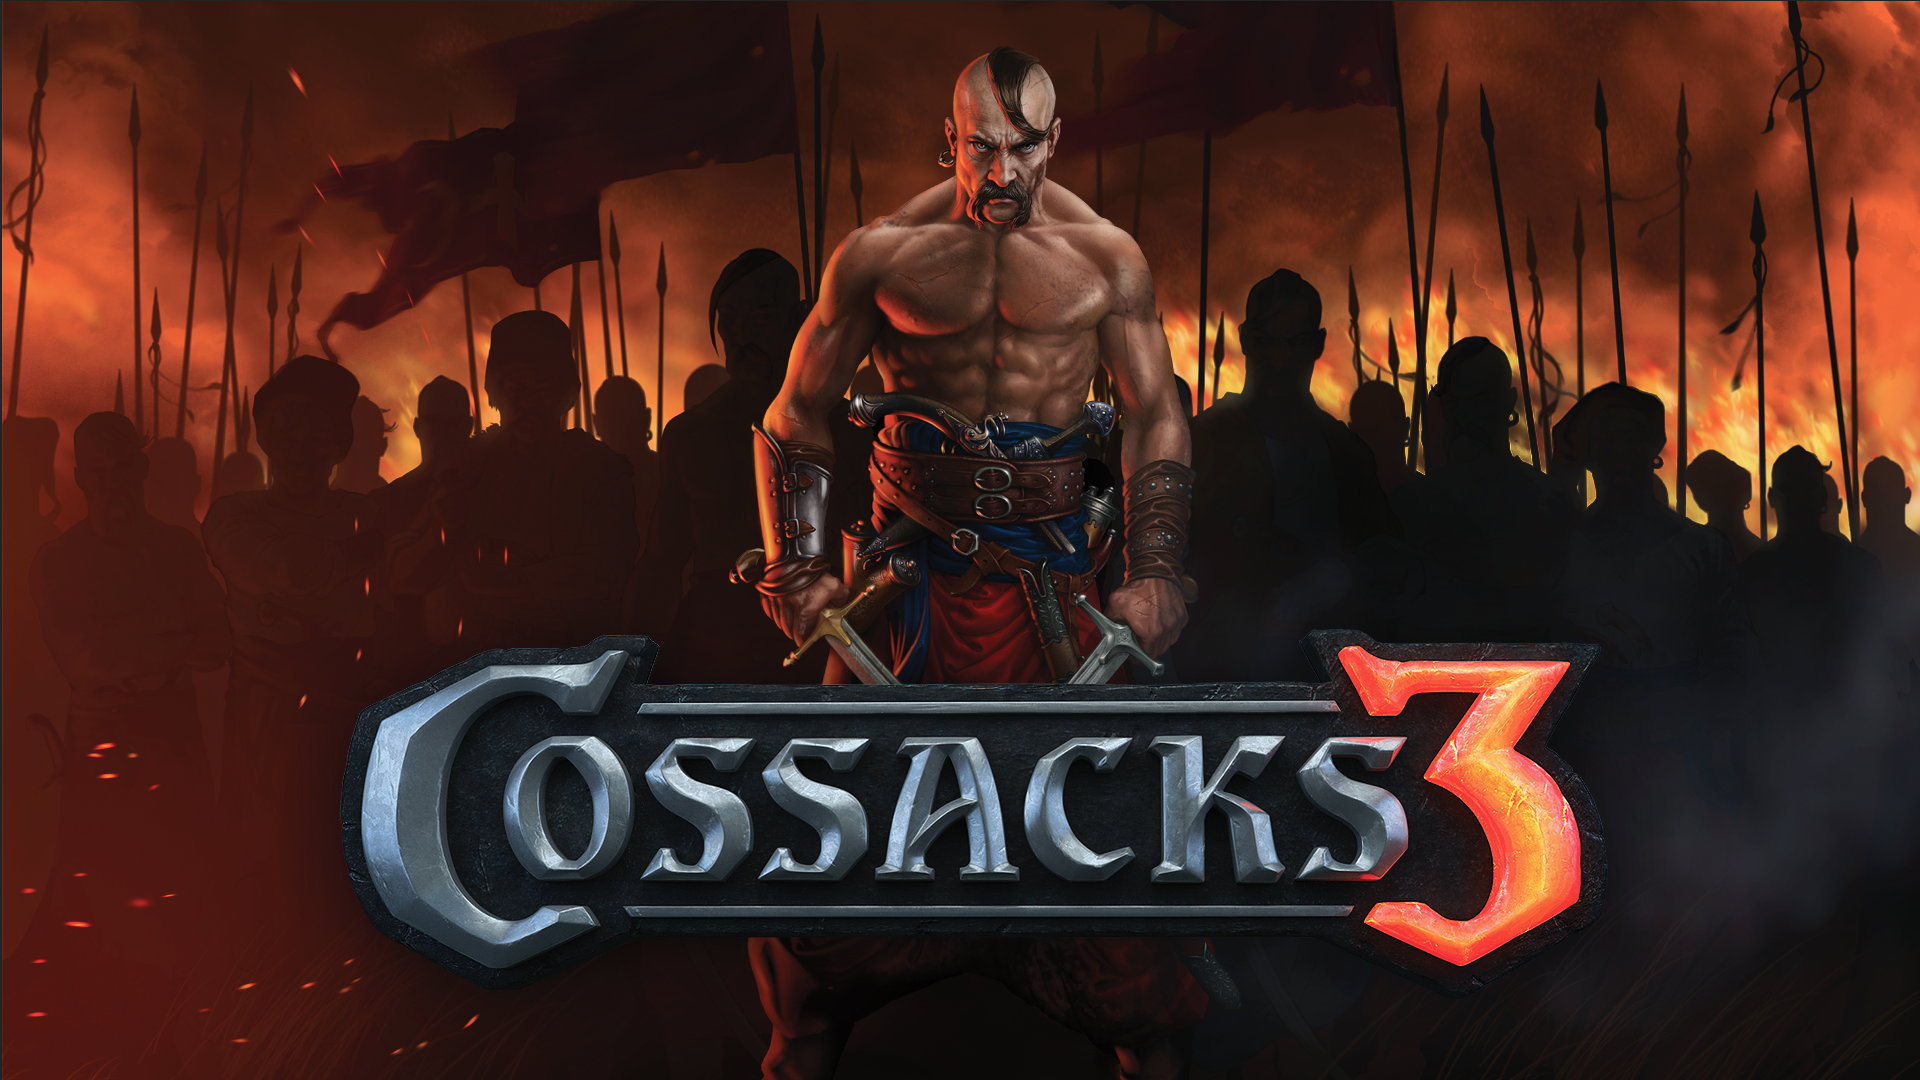 PC Strategy Series Cossacks Revived After 10 Years